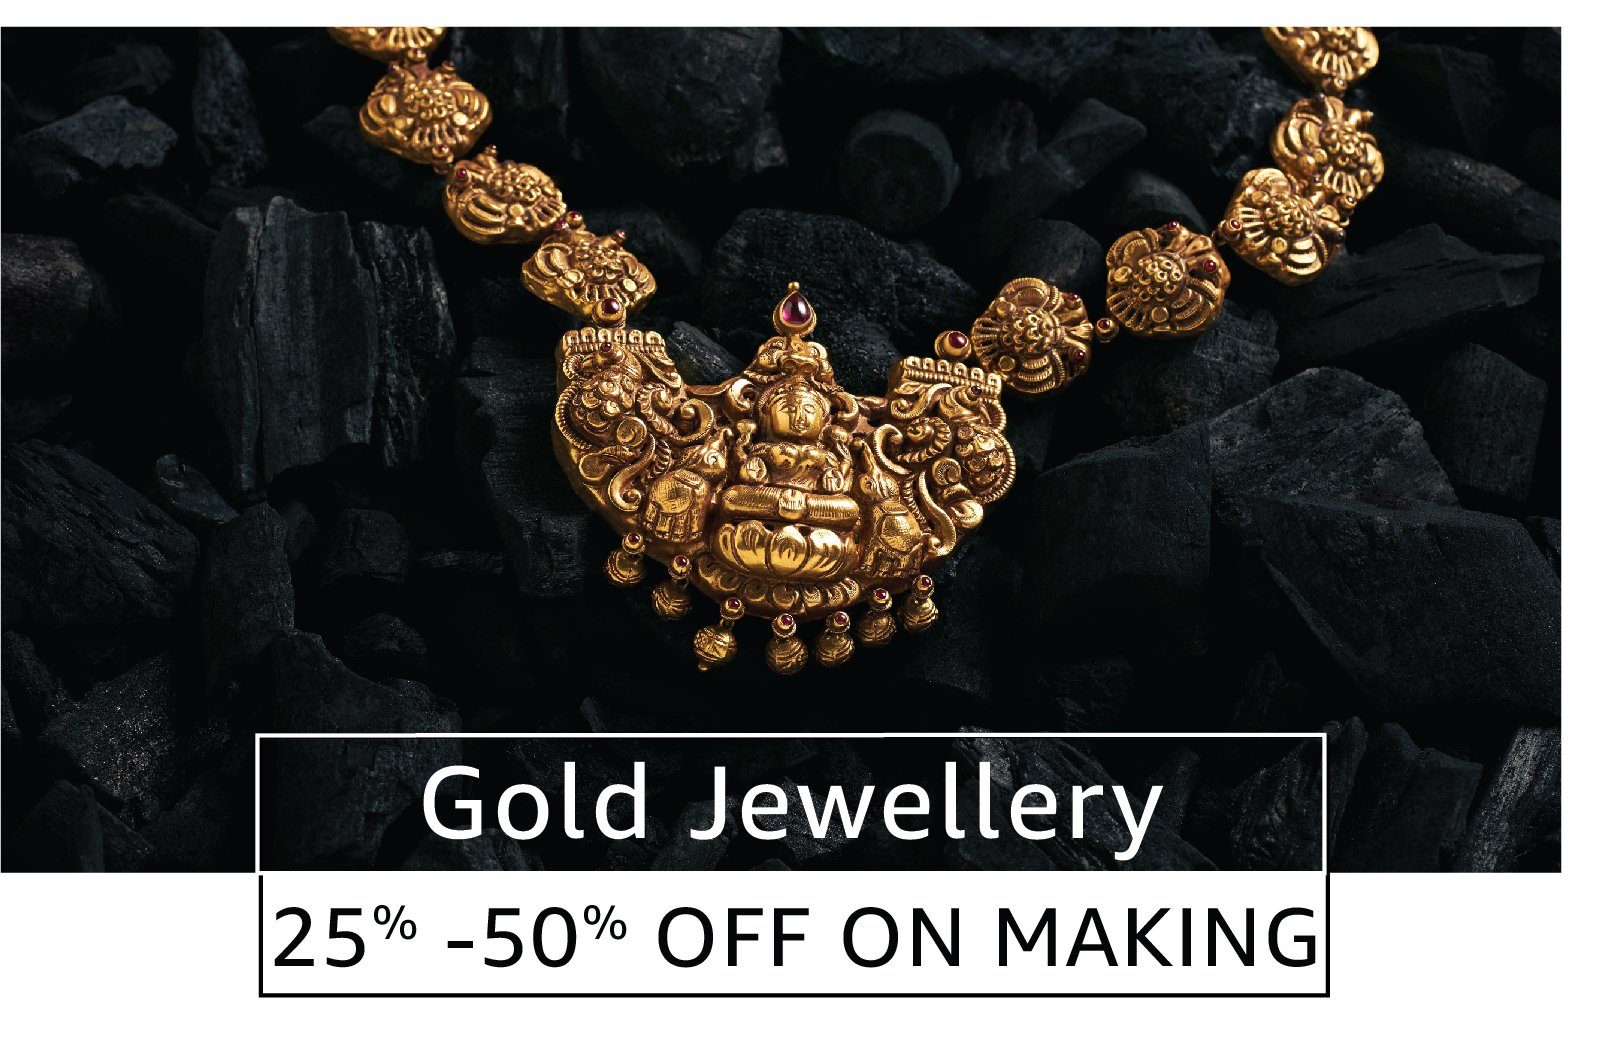 Gold Jewellery 25% to 50% off on making